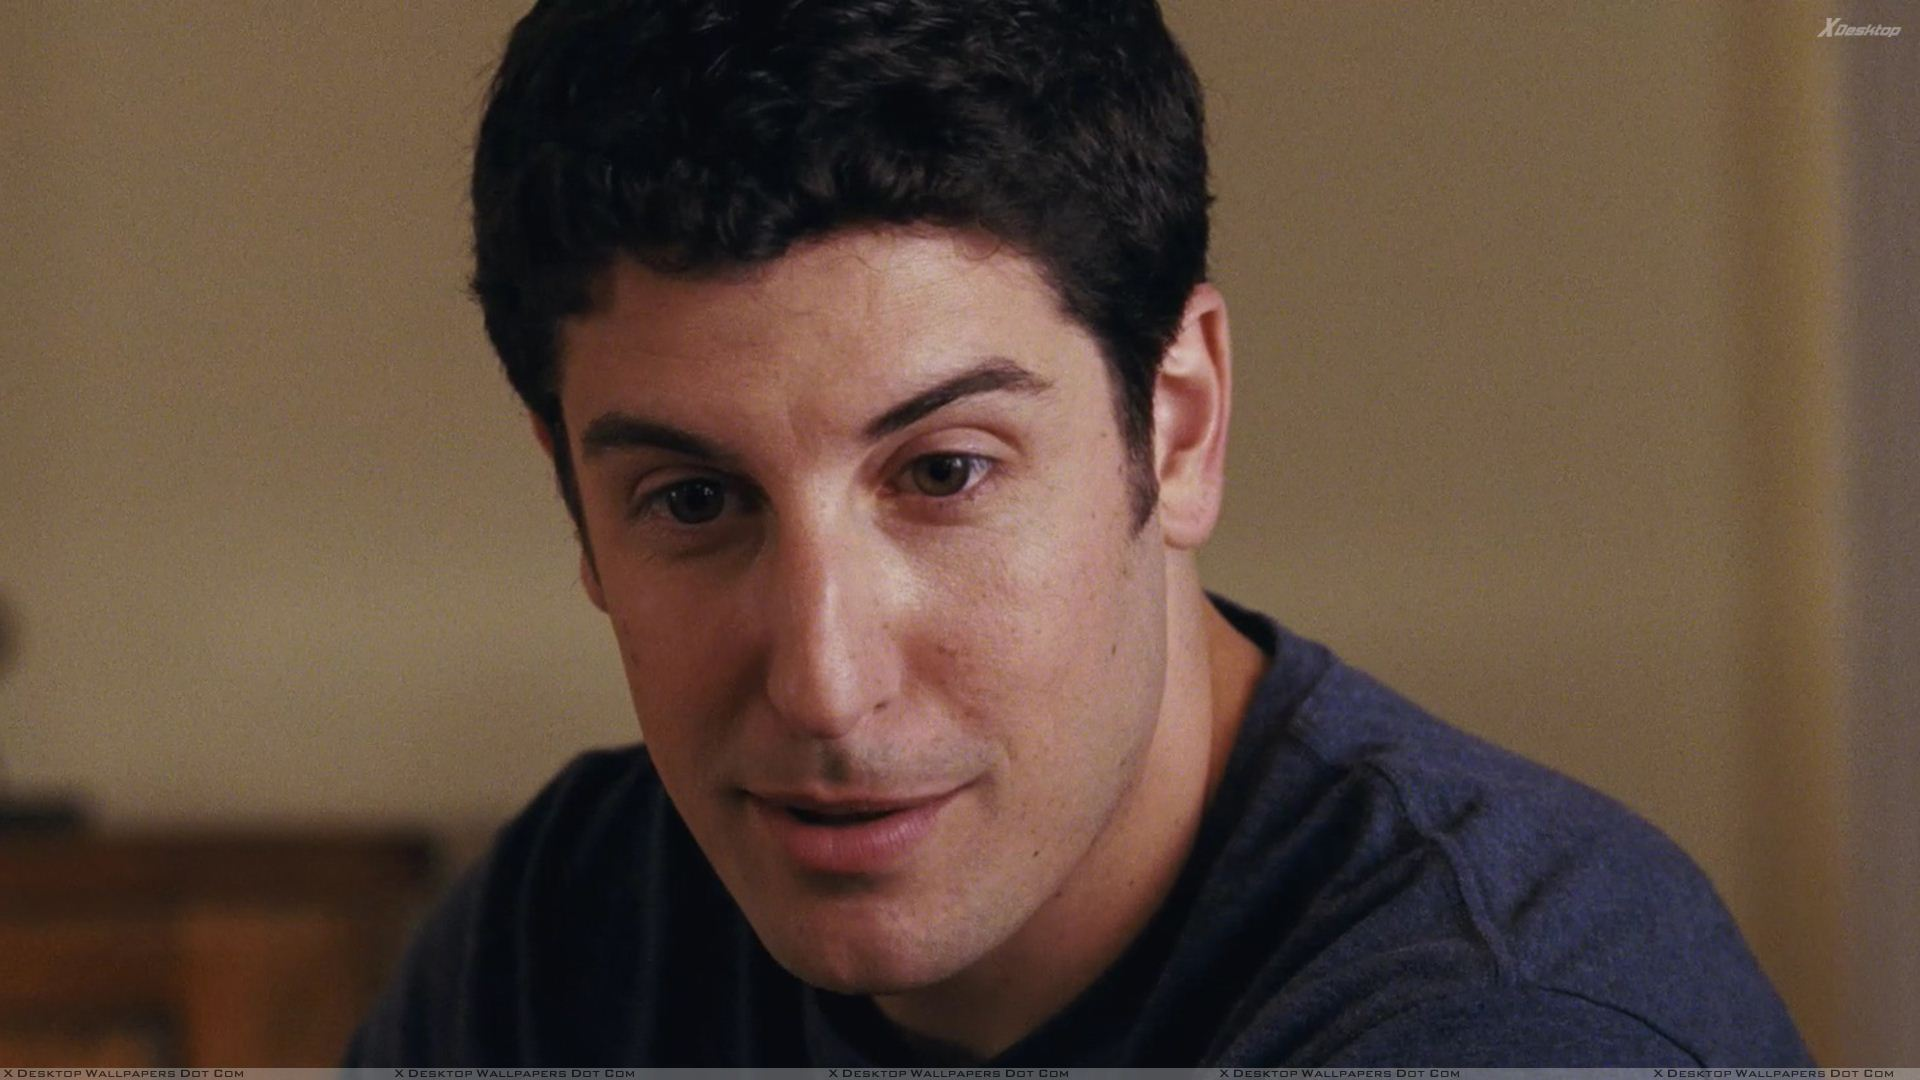 Jason Biggs Wallpapers American Reunion Jason Biggs In Black T Shirt Wallpaper